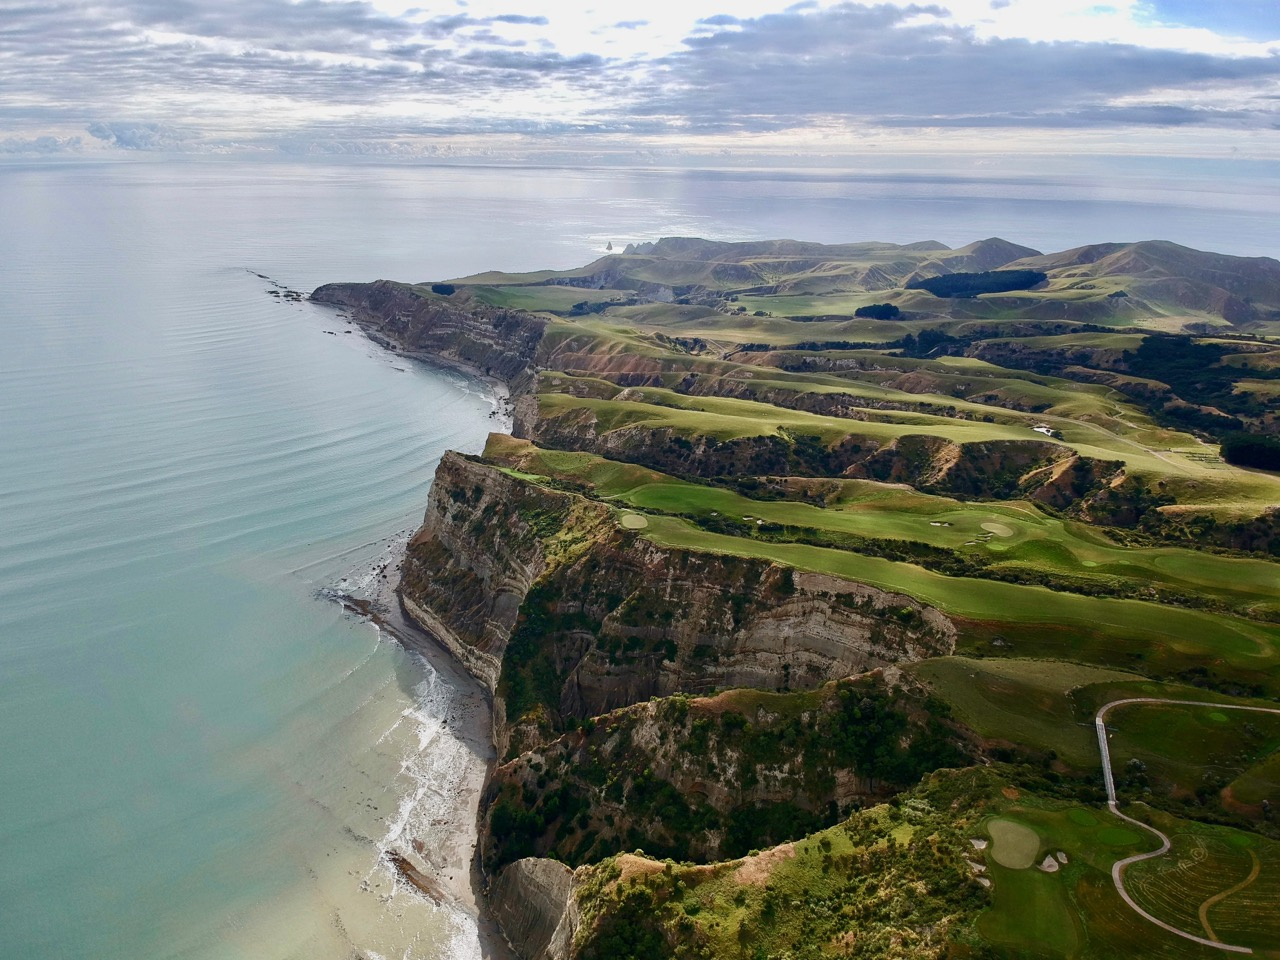 Cape Kidnappers coastline